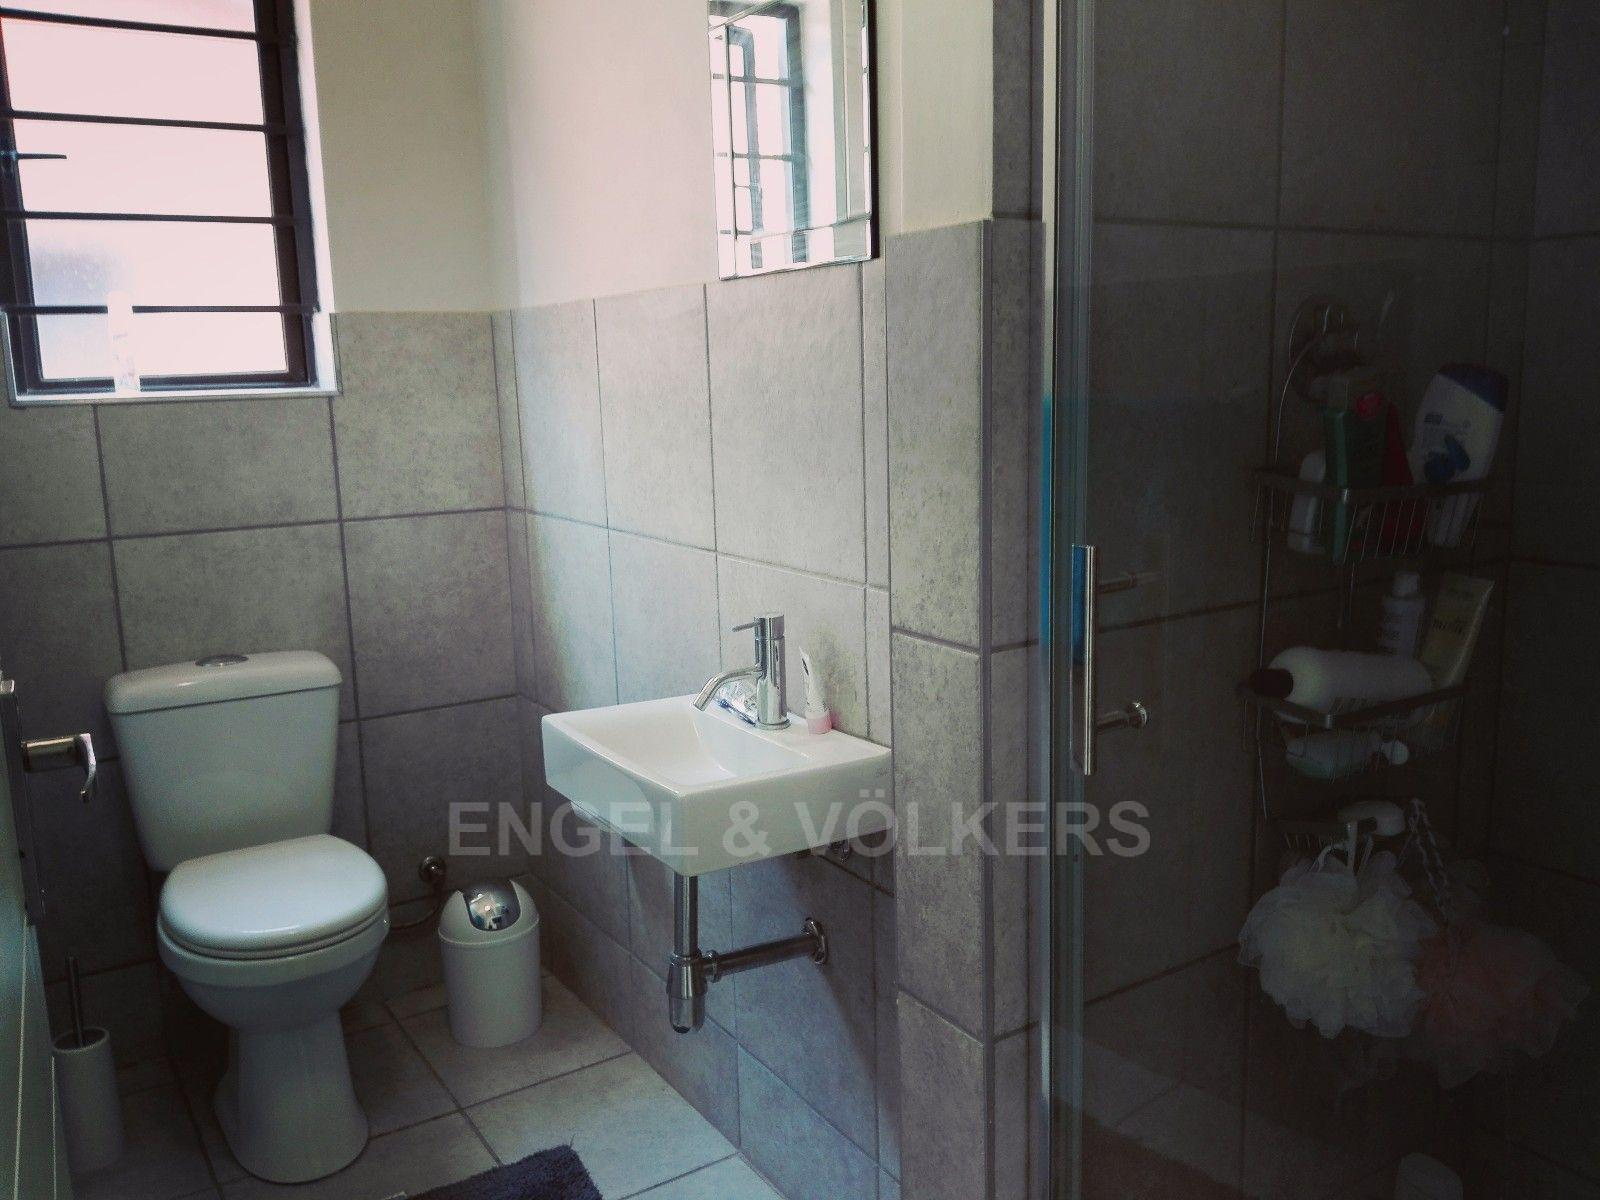 Potchefstroom Central property for sale. Ref No: 13451927. Picture no 13